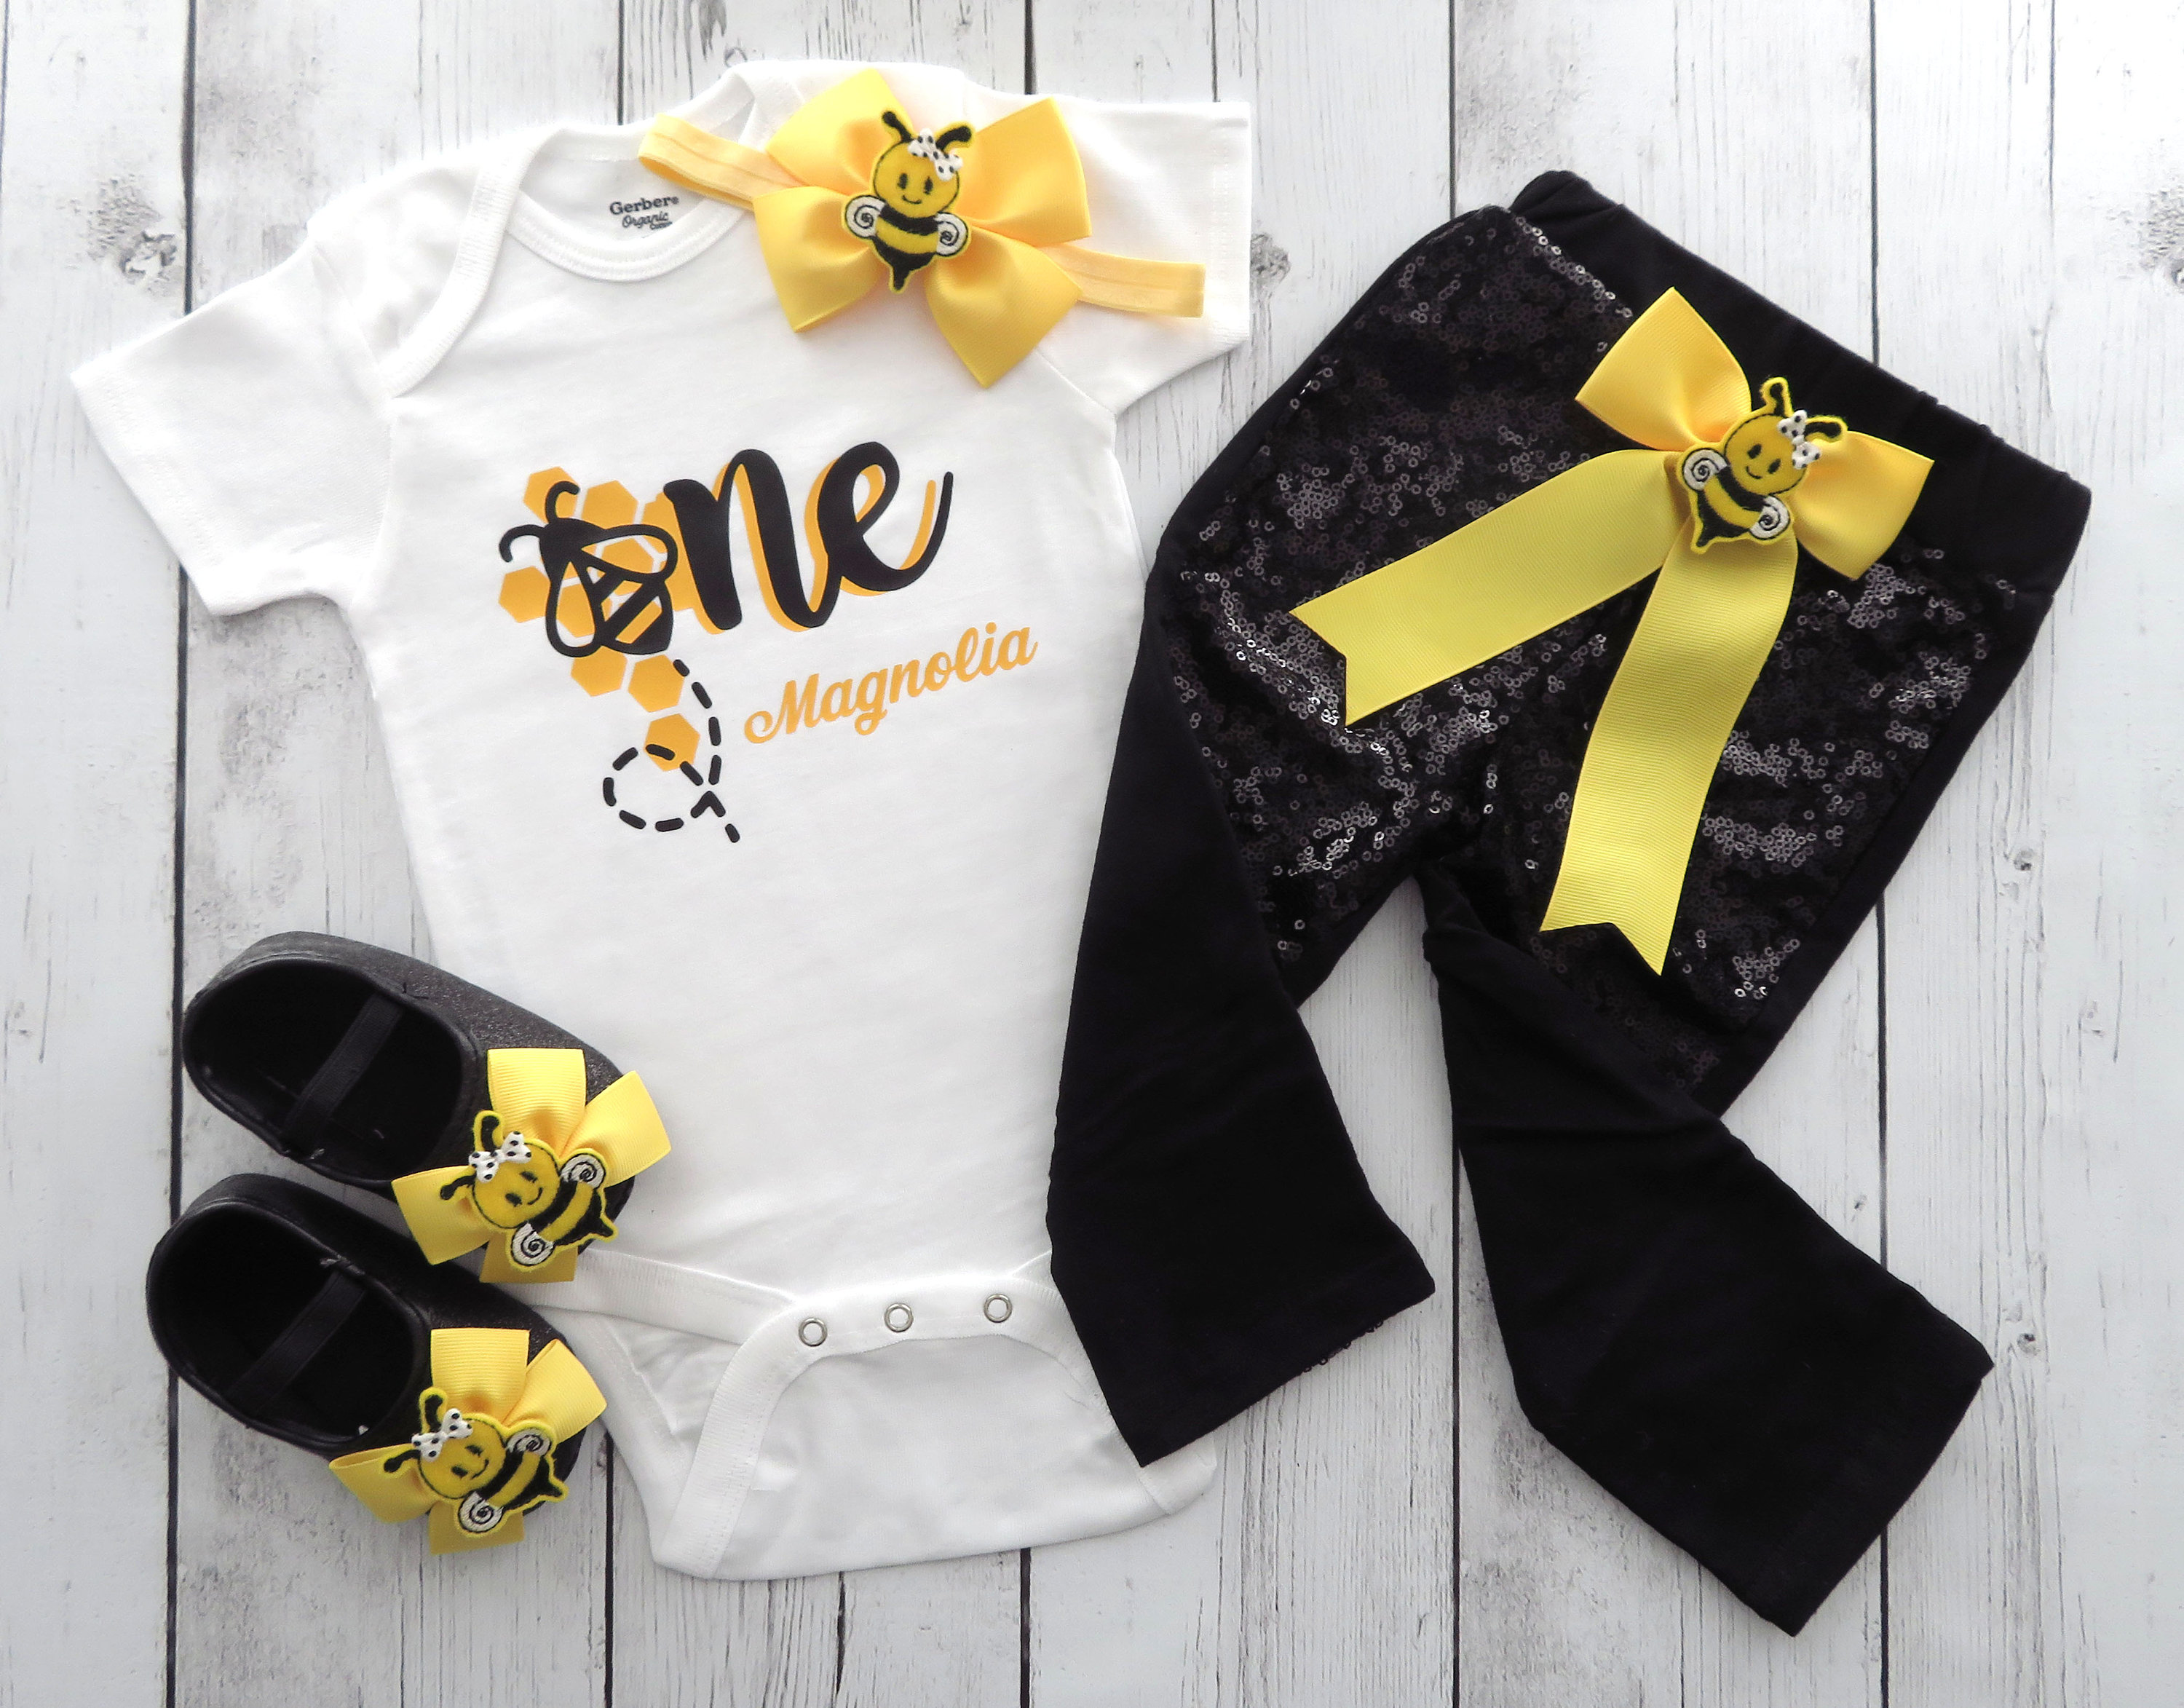 Bumble Bee First Birthday Outfit for baby girl - yellow black, bumble bee girl birthday outfit, sequin pants, first birthday outfit girl